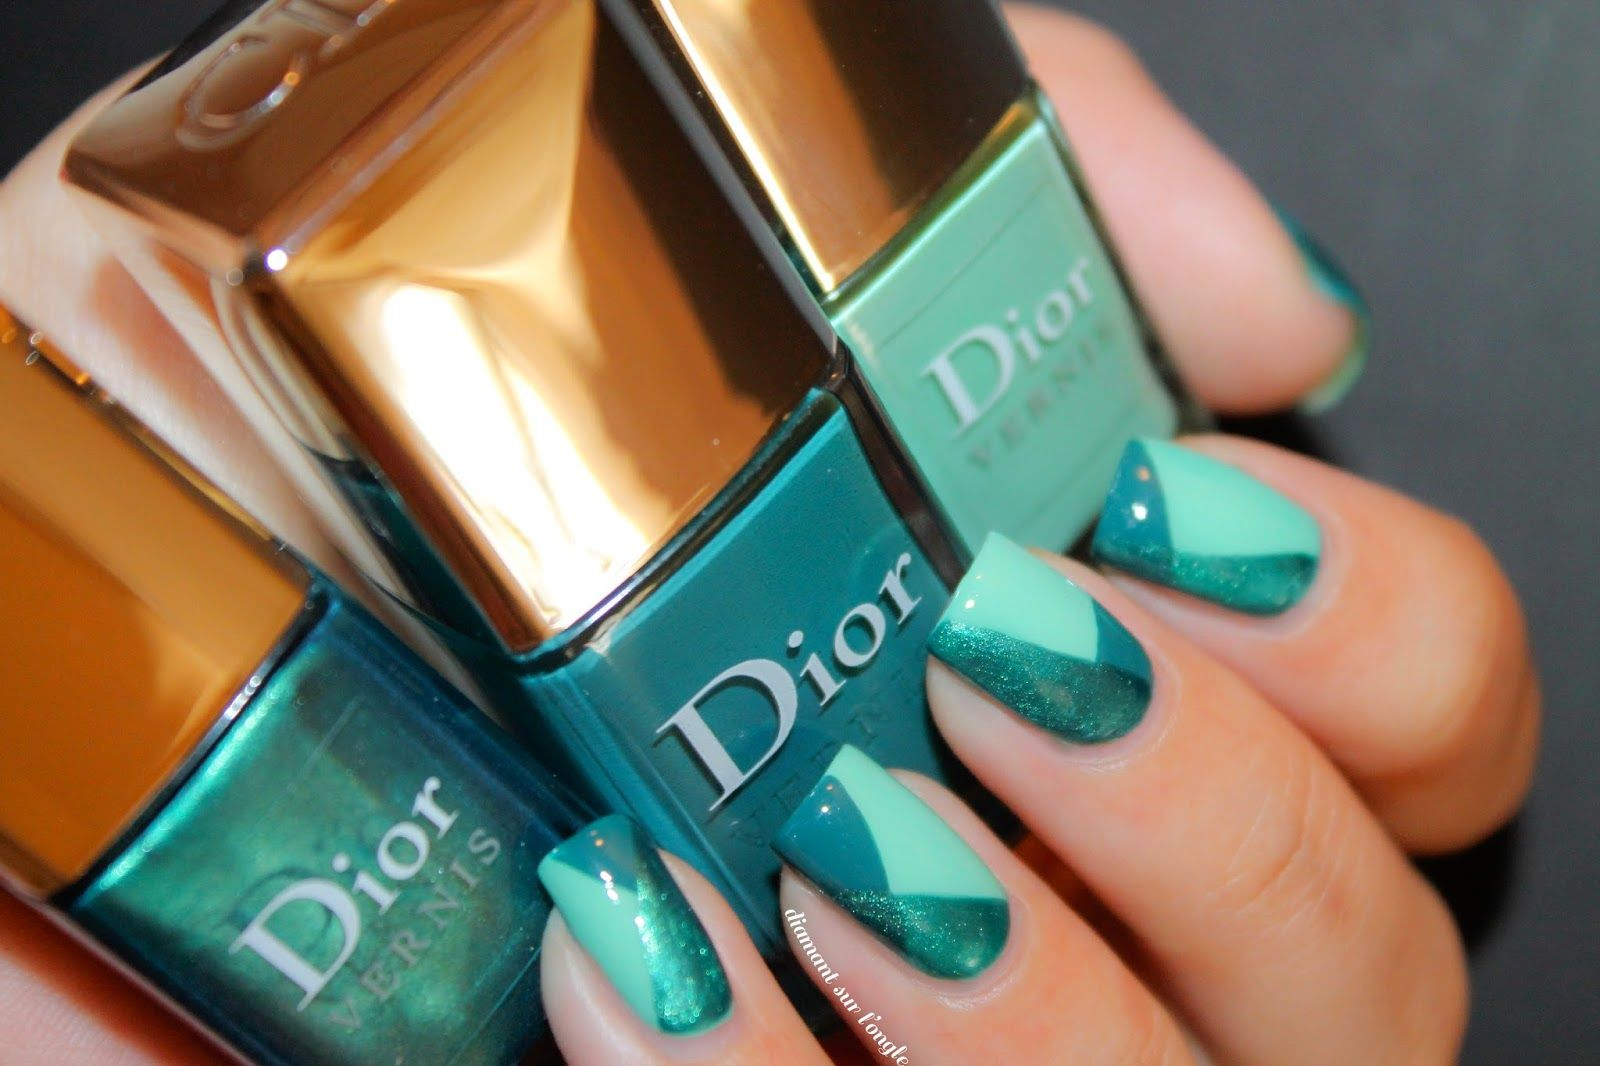 ∆ Geometric Nails // Nailstorming ∆ by diamant sur l'ongle